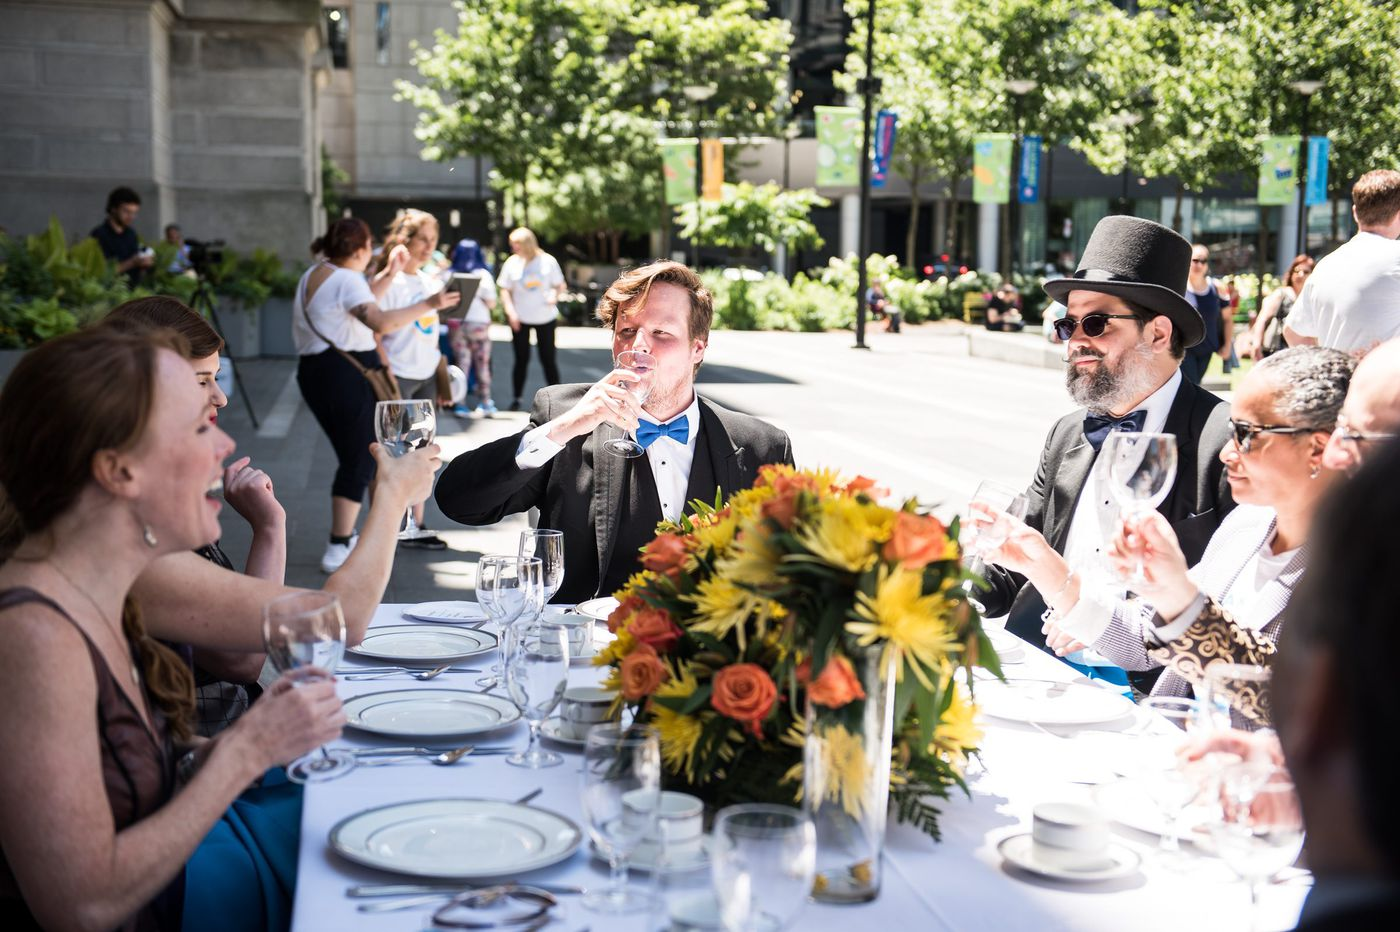 An 'invisible' three-course lunch served at Dilworth Park to raise awareness for homeless youth